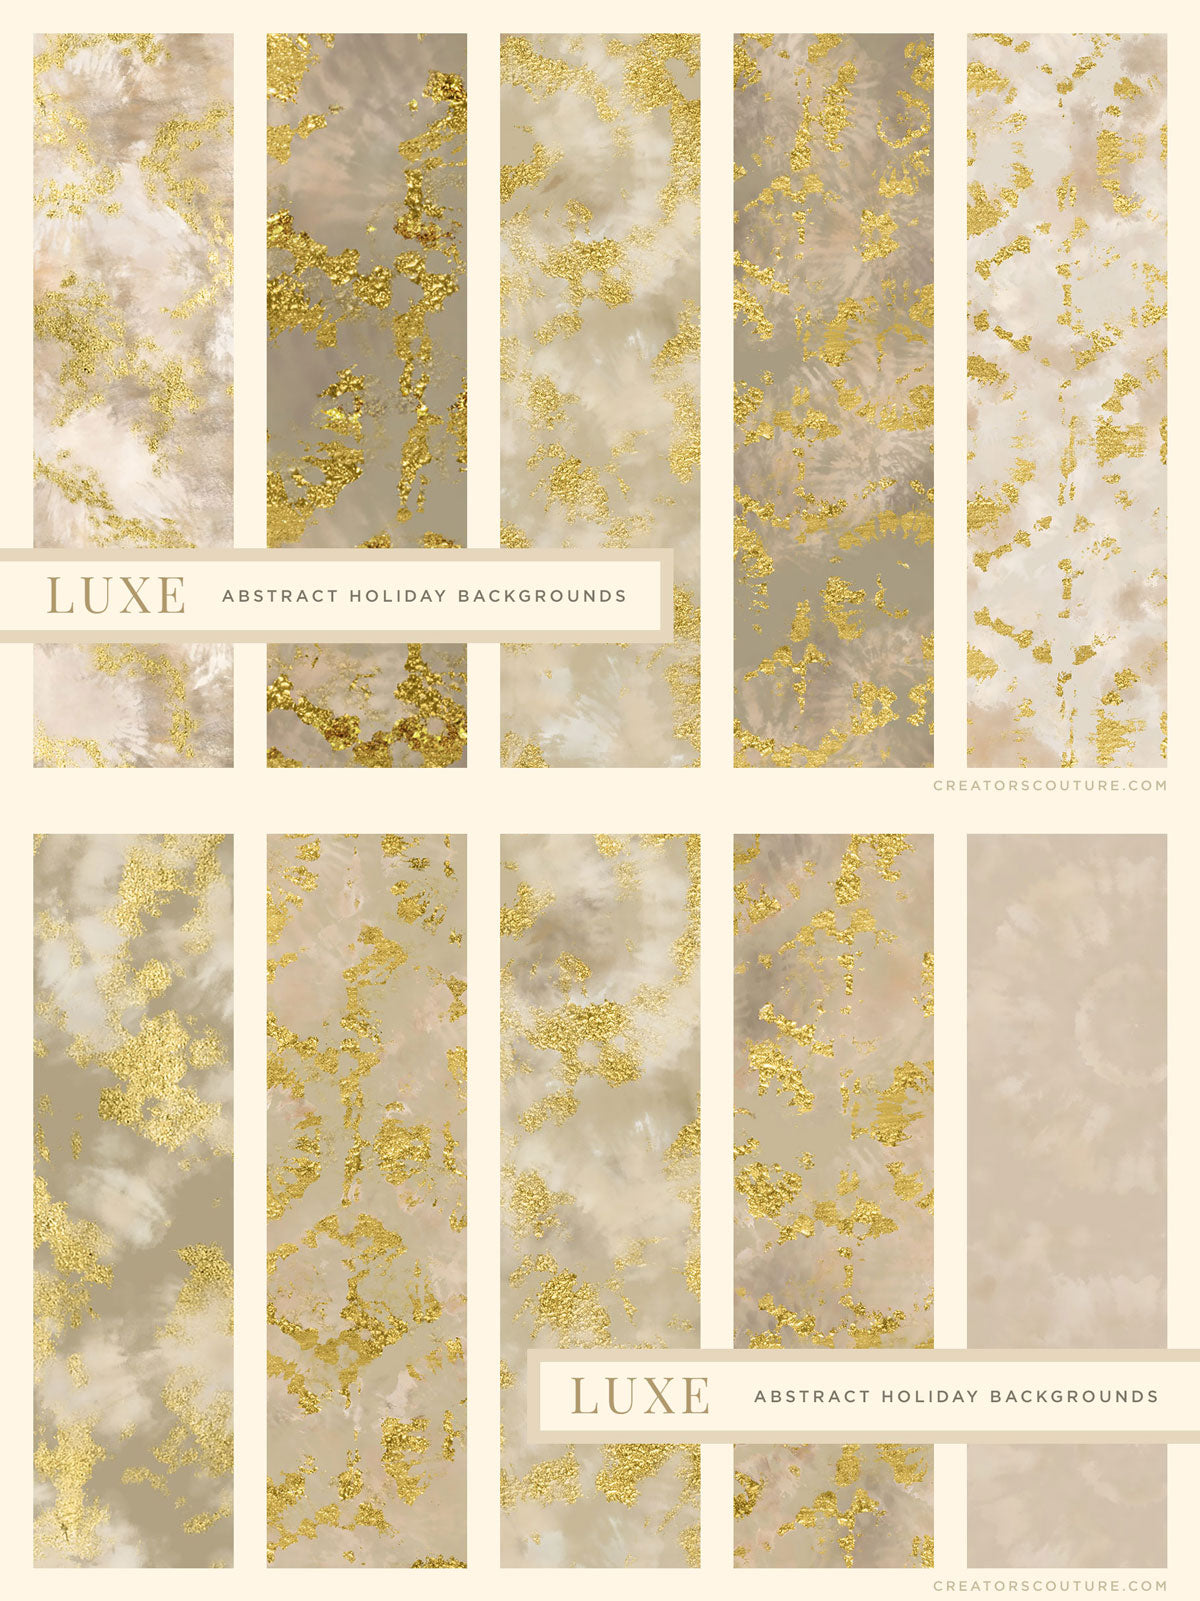 luxe christmas holiday painted backgrounds preview, white and gold paper